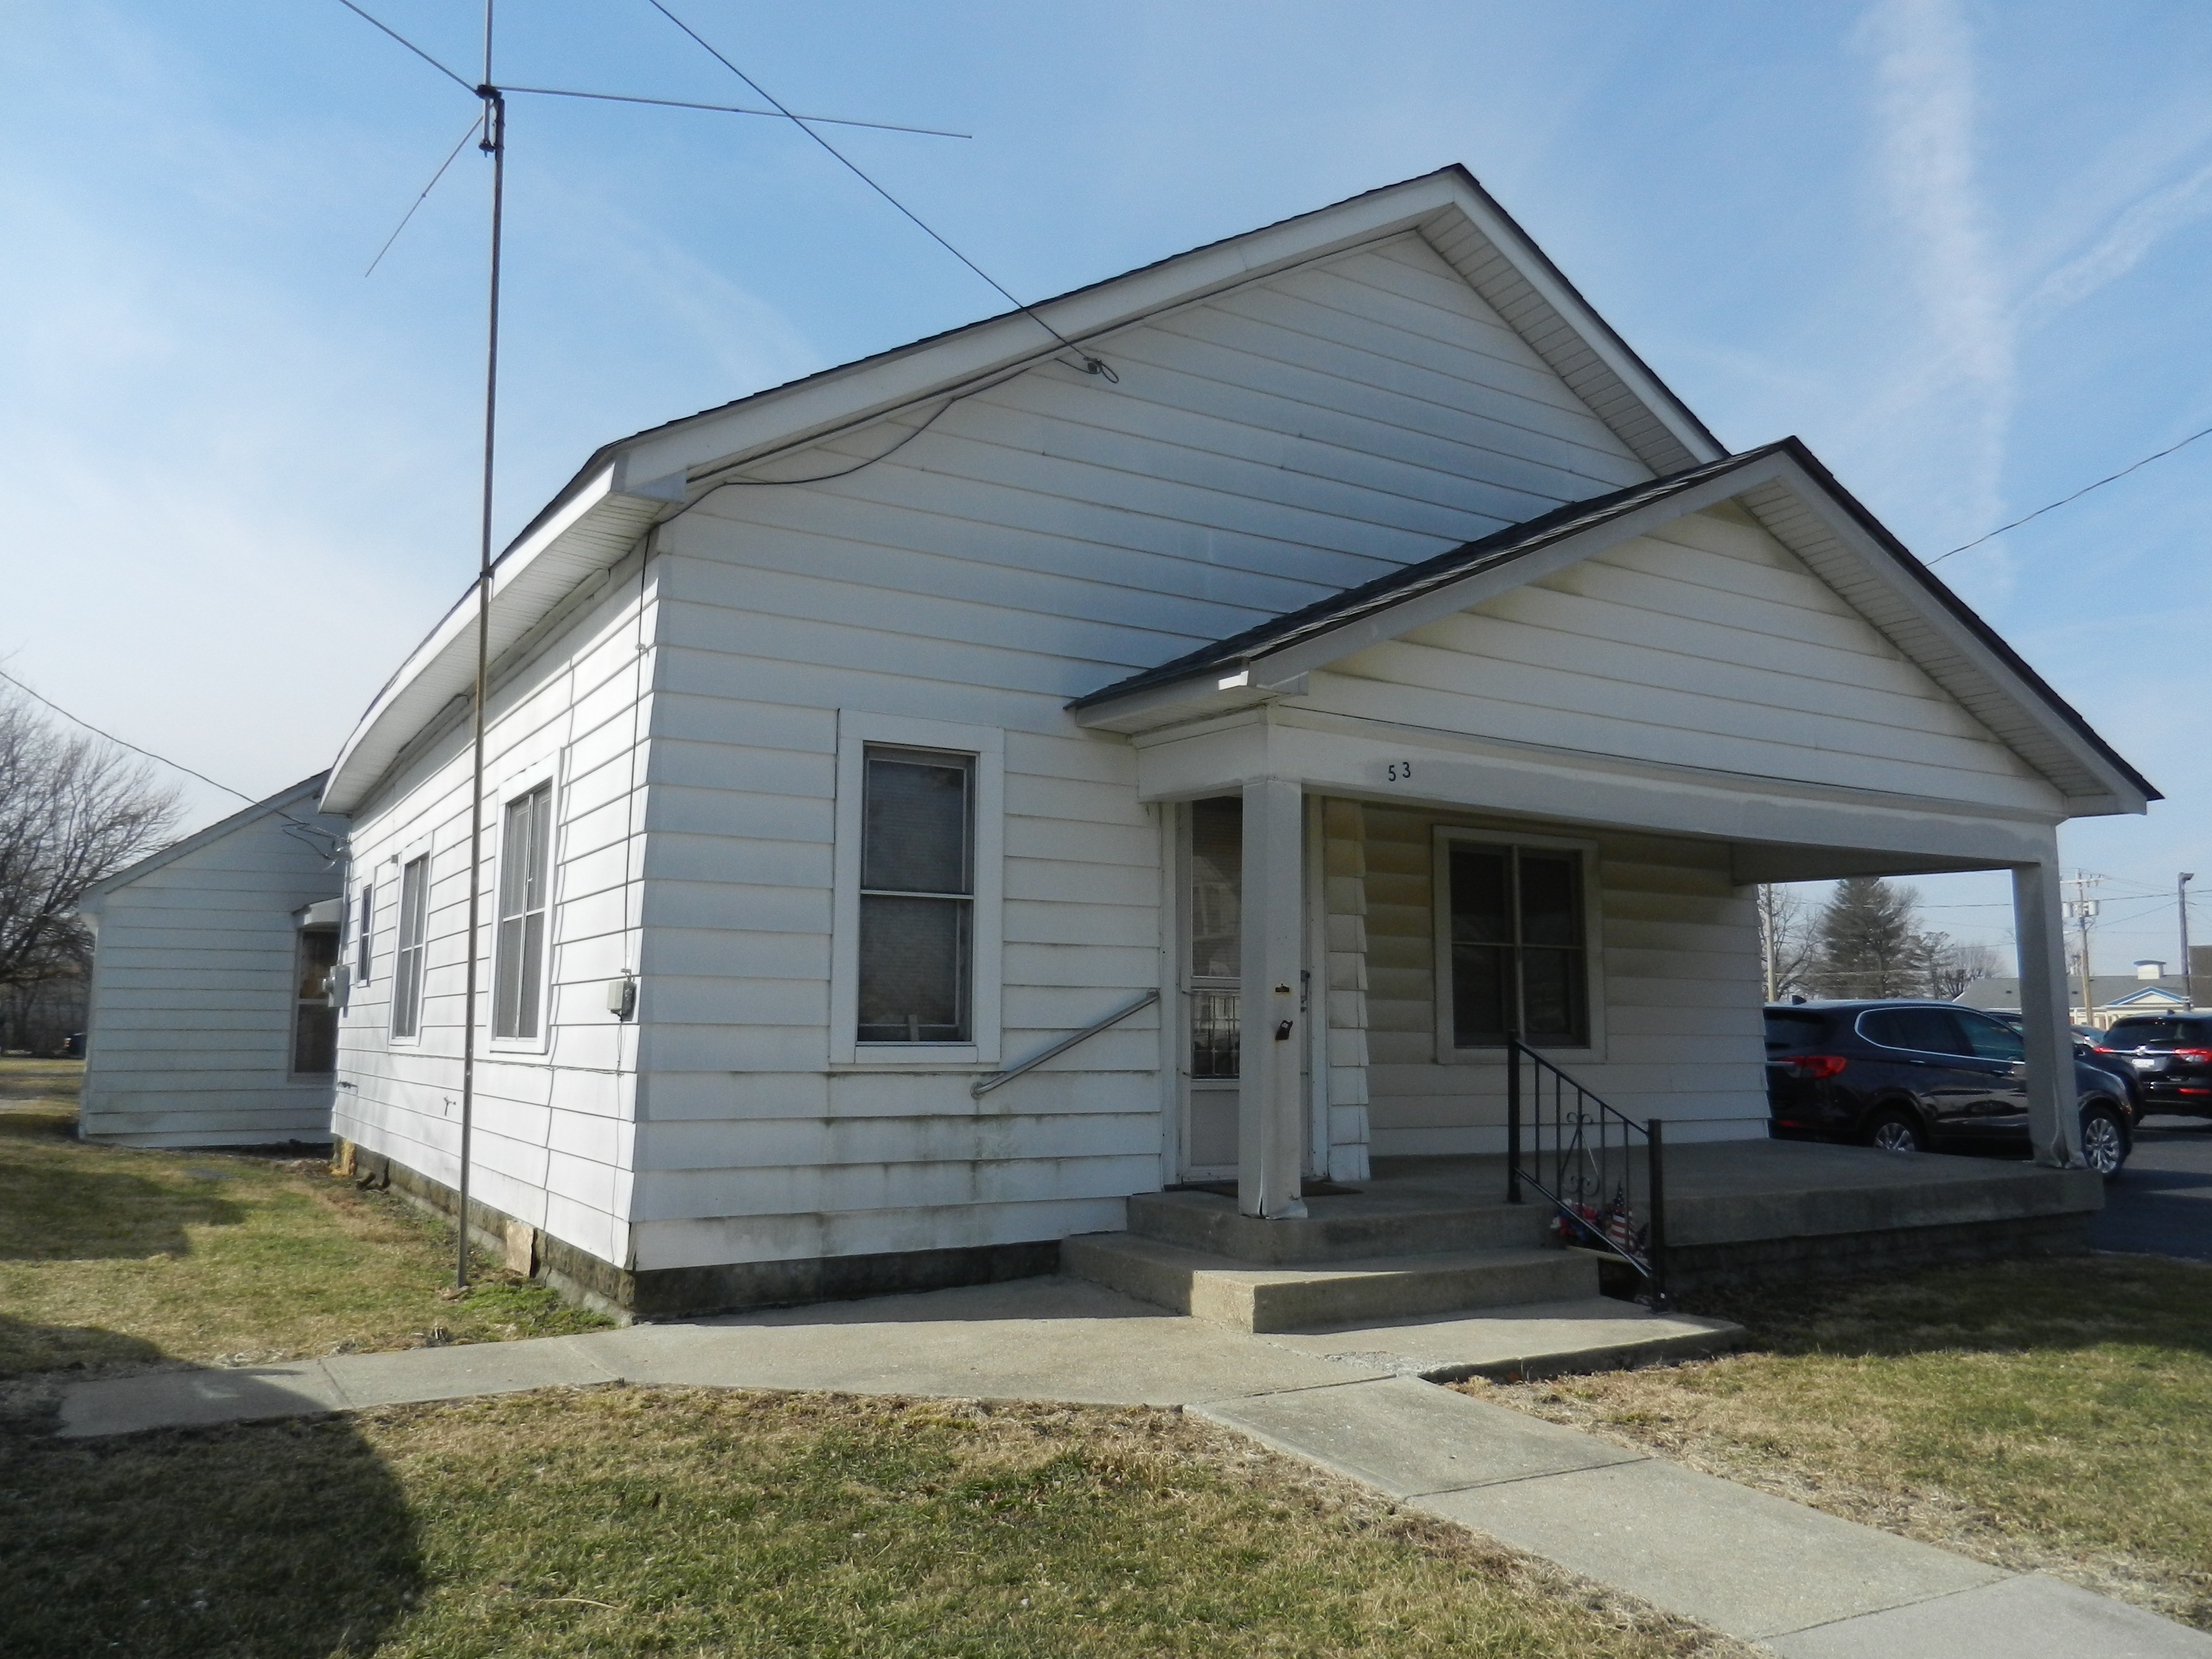 2 BEDROOM HOME – GREAT INVESTMENT!